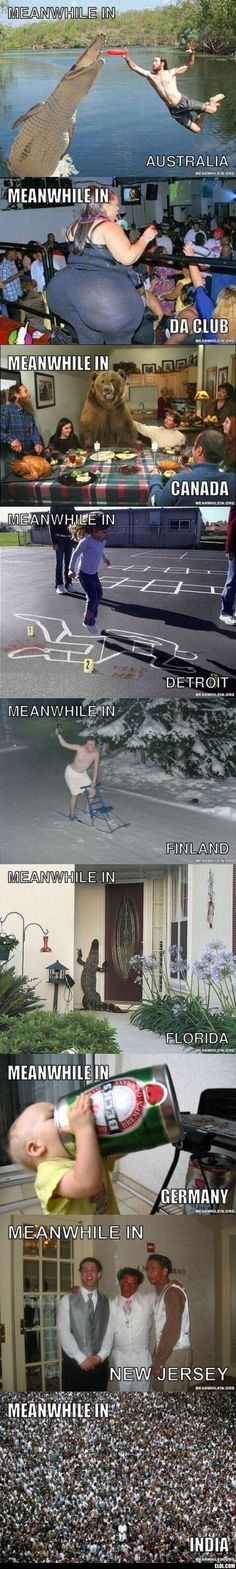 Reposting for meanwhile in Finland, and as a Finn I can confirm that it's pretty accurate.